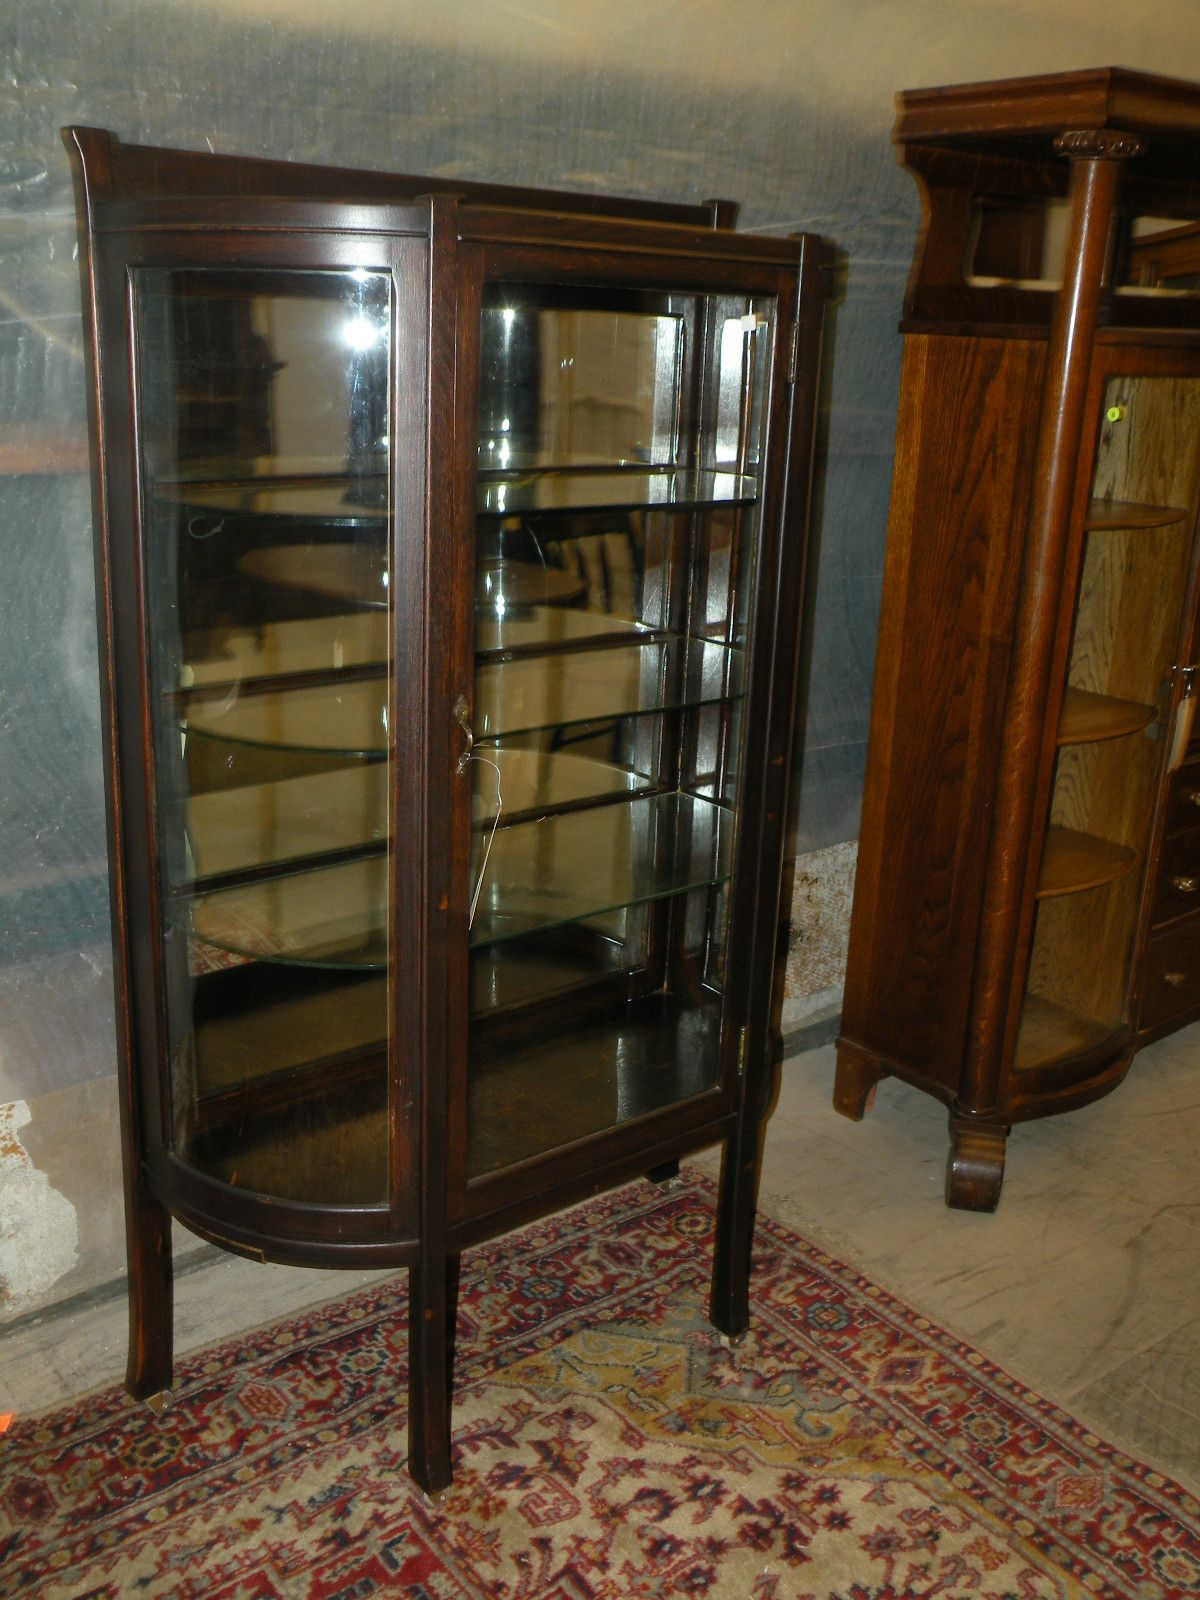 Antique Mission Oak Curved Glass Front Curio Display Cabinet | eBay - Antique Mission Oak Curved Glass Front Curio Display Cabinet EBay